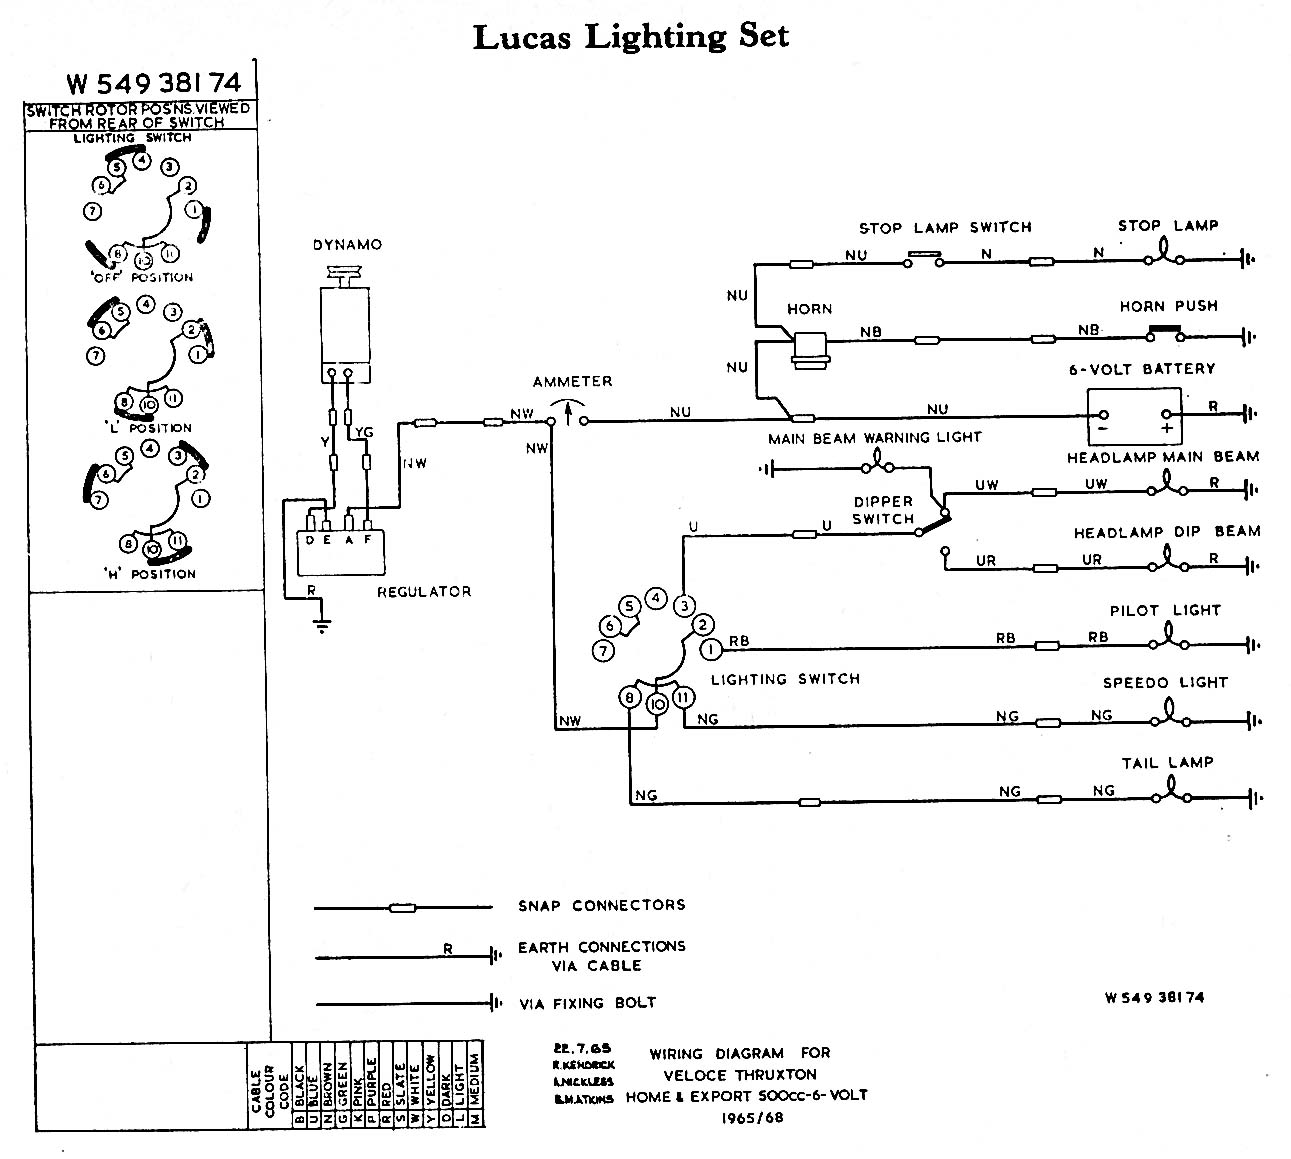 Velocette Owners Club Technical Information Wiring Diagrams Set 3 Light Wire Schematic Lucas Lighting Switch With Dynamo Avc